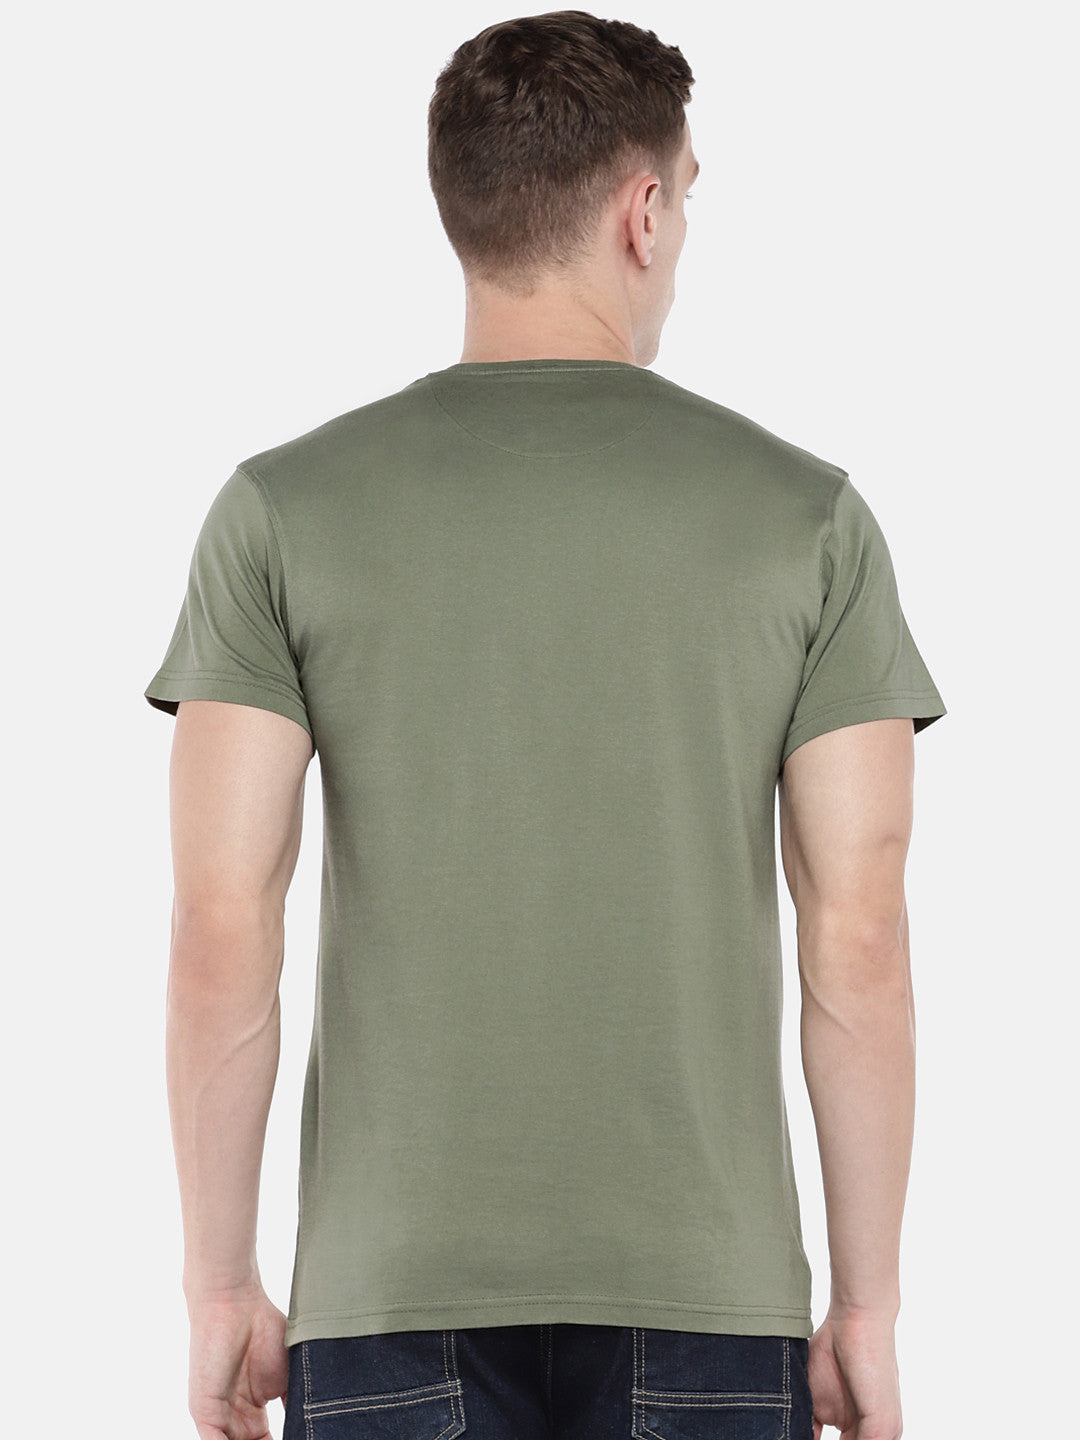 Olive Green Printed Round Neck T-shirt-3